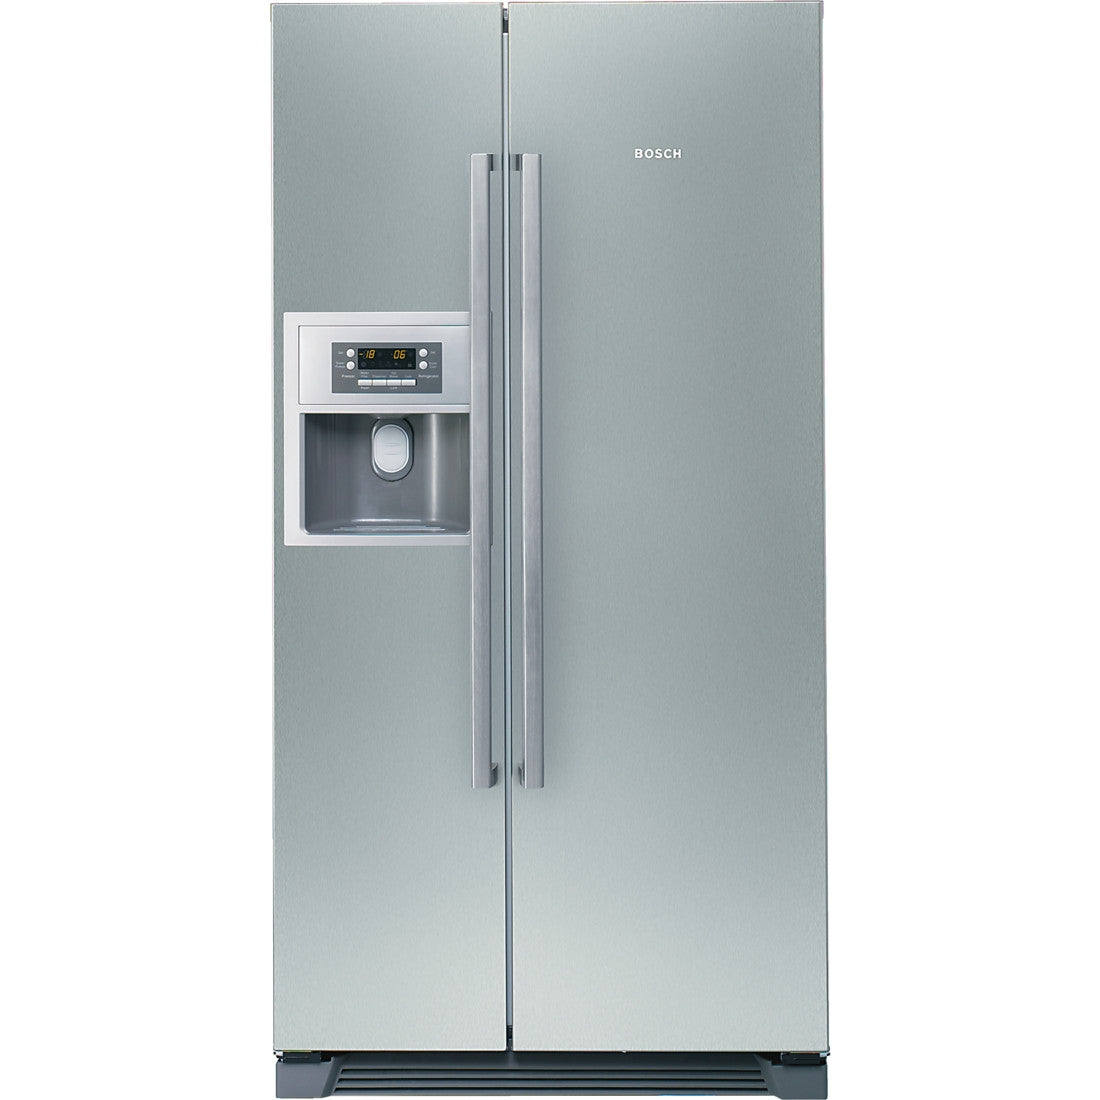 Bosch KAN58A75 American Style Fridge Freezer With Ice & Water Stainless Steel